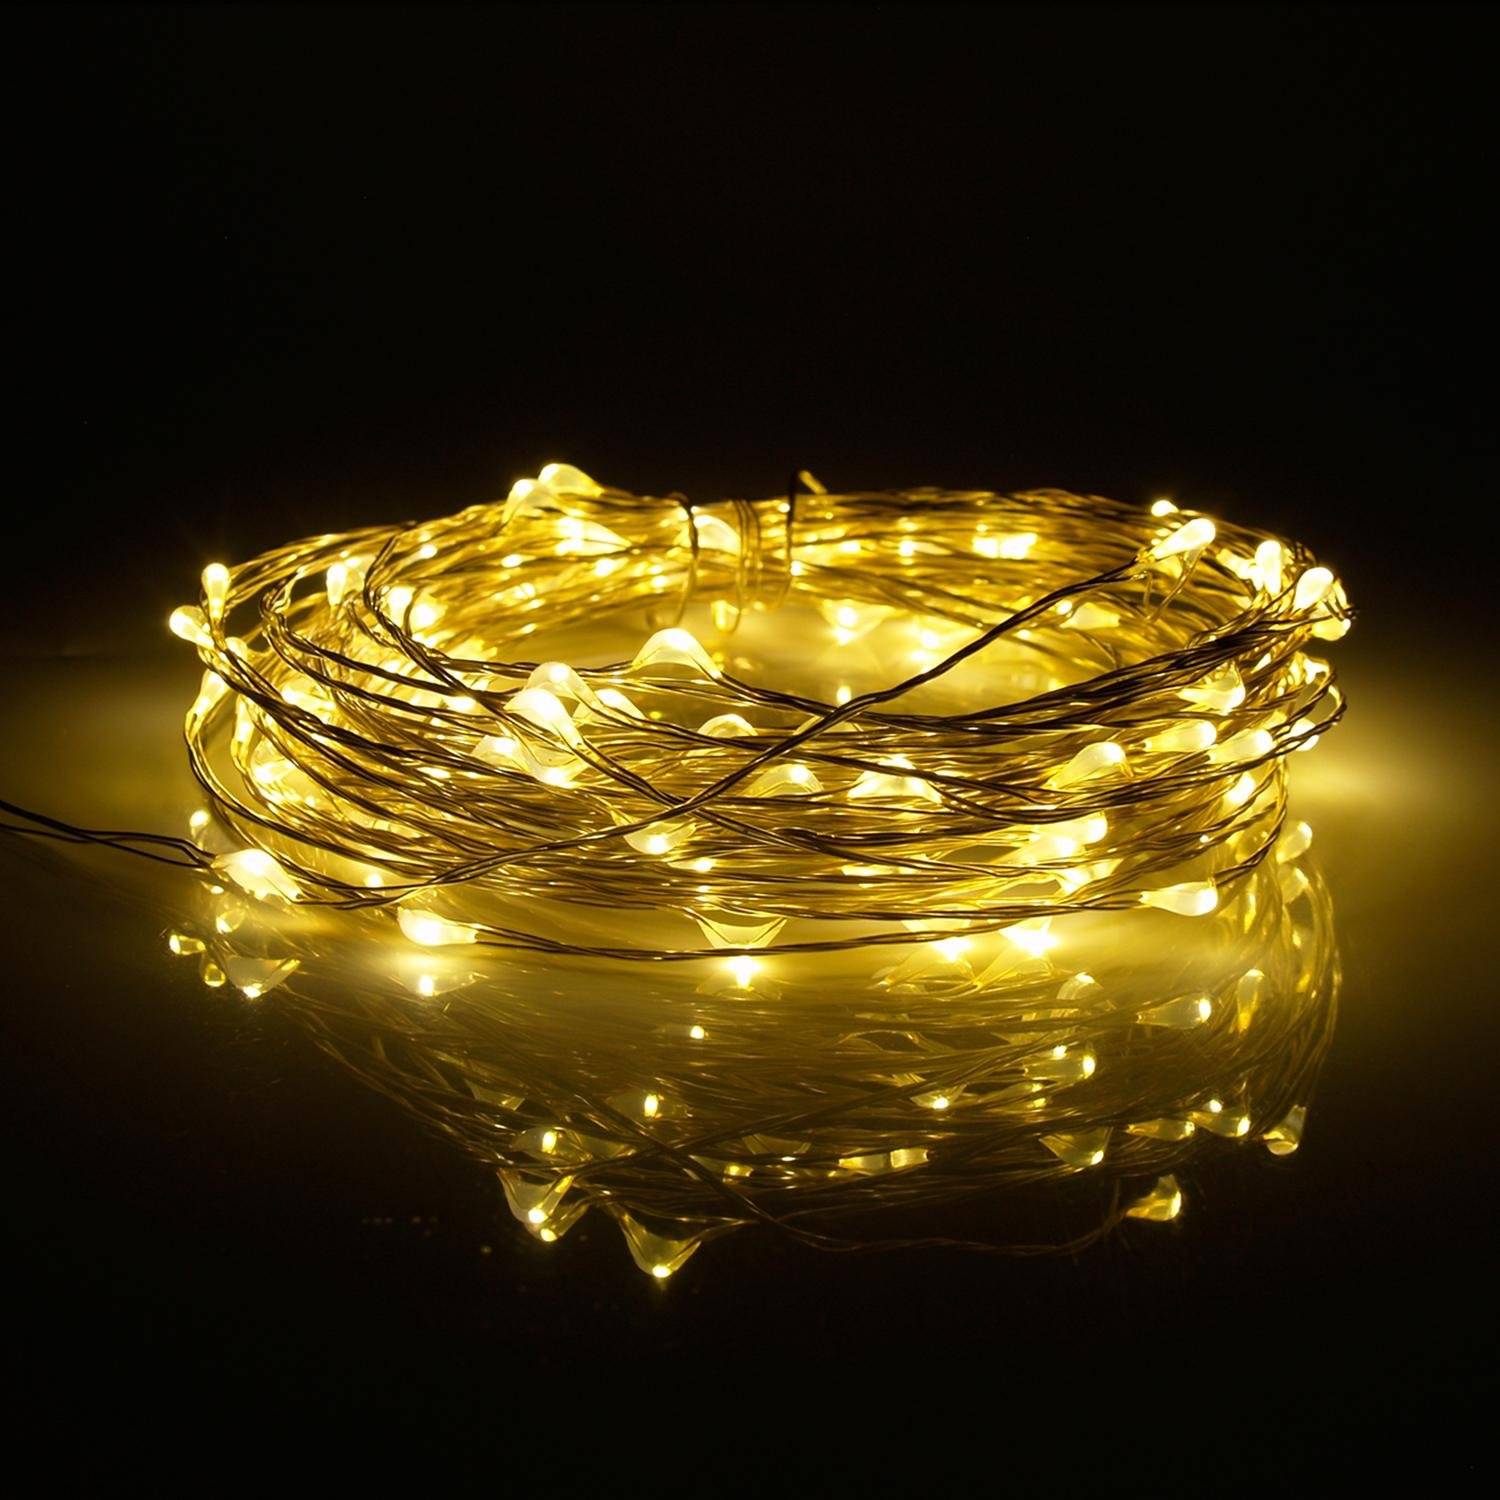 5v Power Adapter For Home Bedroom Christmas Wedding Party Decoration 33ft 10m 100 LED Fairy String Lights Ultra Thin Copper Wire Starry Light Warm White TM niceEshop